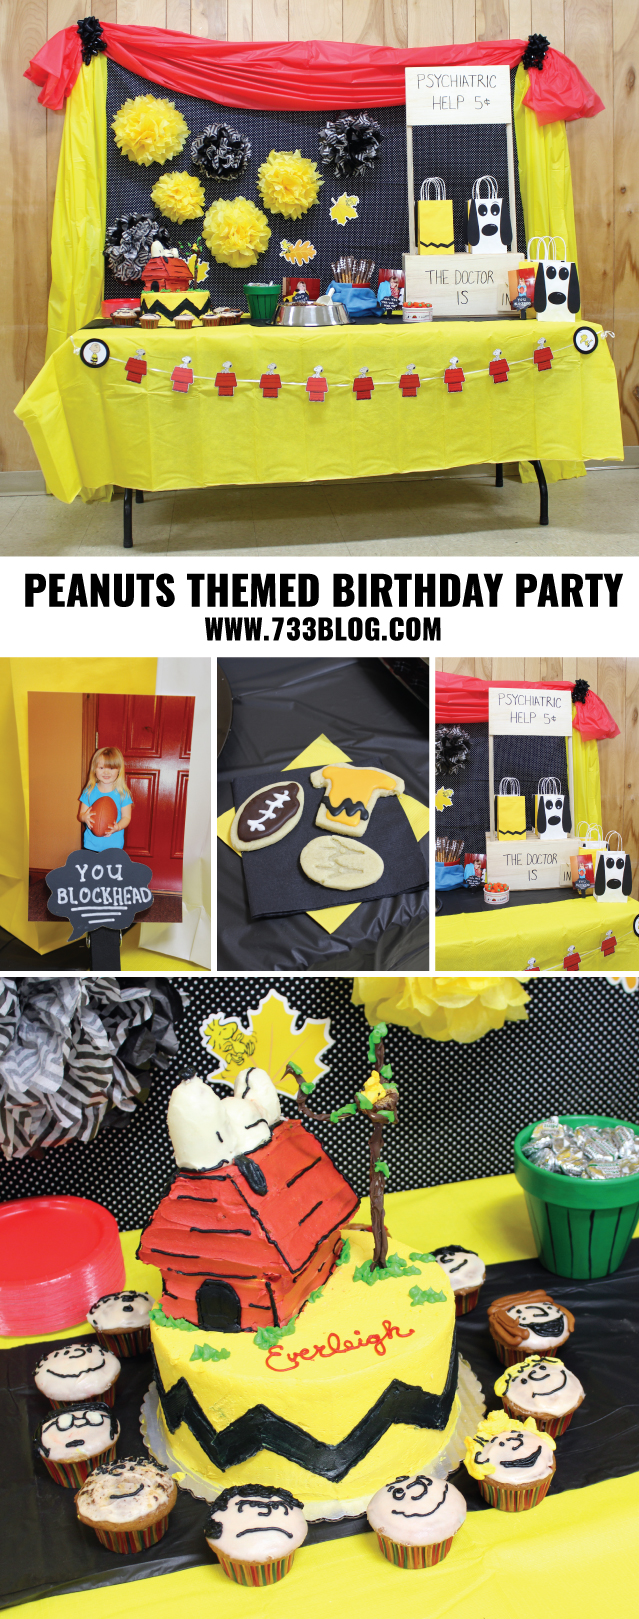 Peanuts Themed Birthday Party